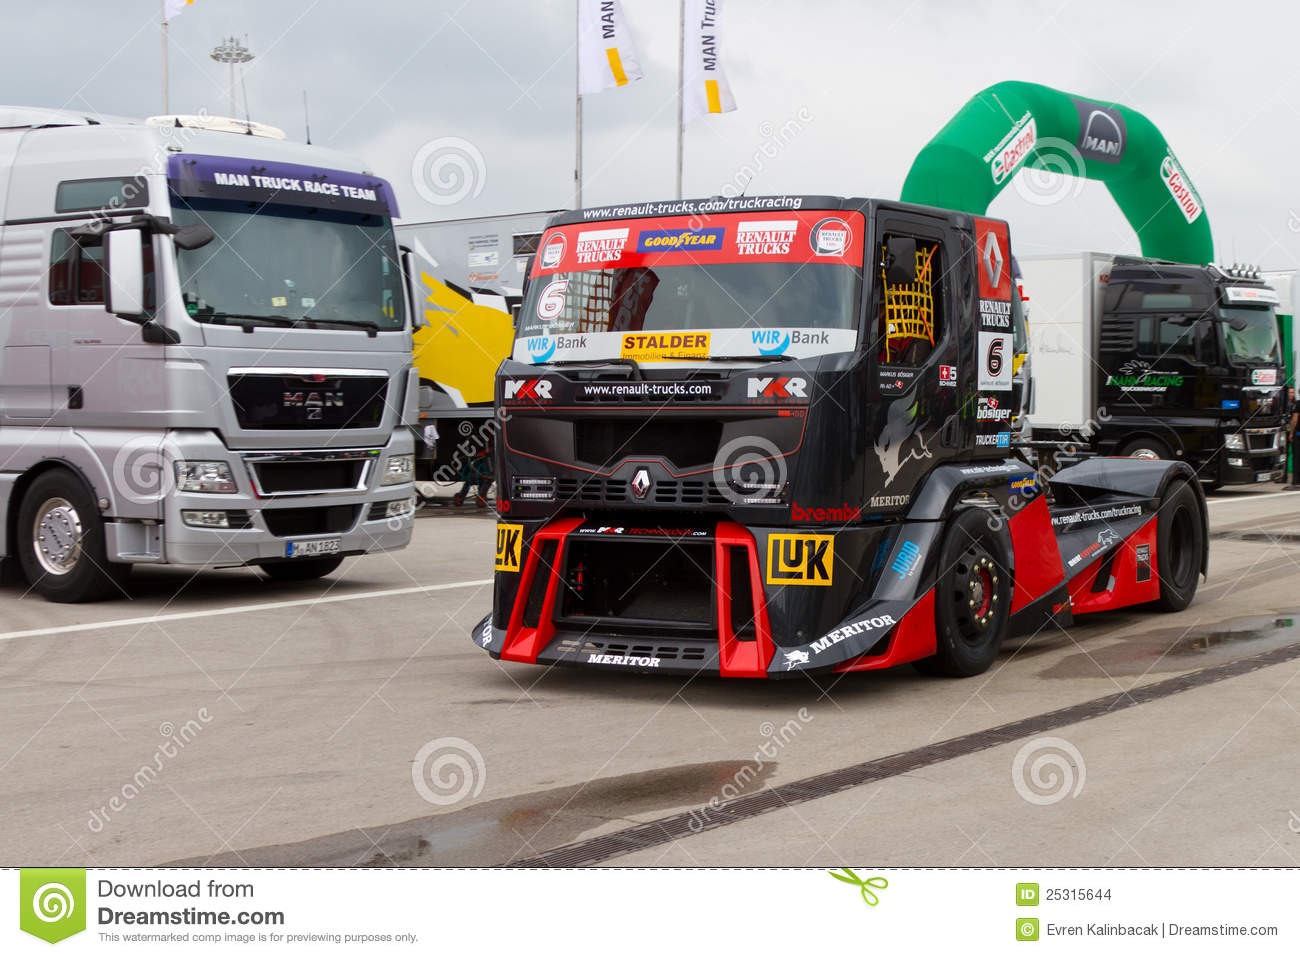 2012 fia european truck racing championship editorial for Garage renault evrecy 14